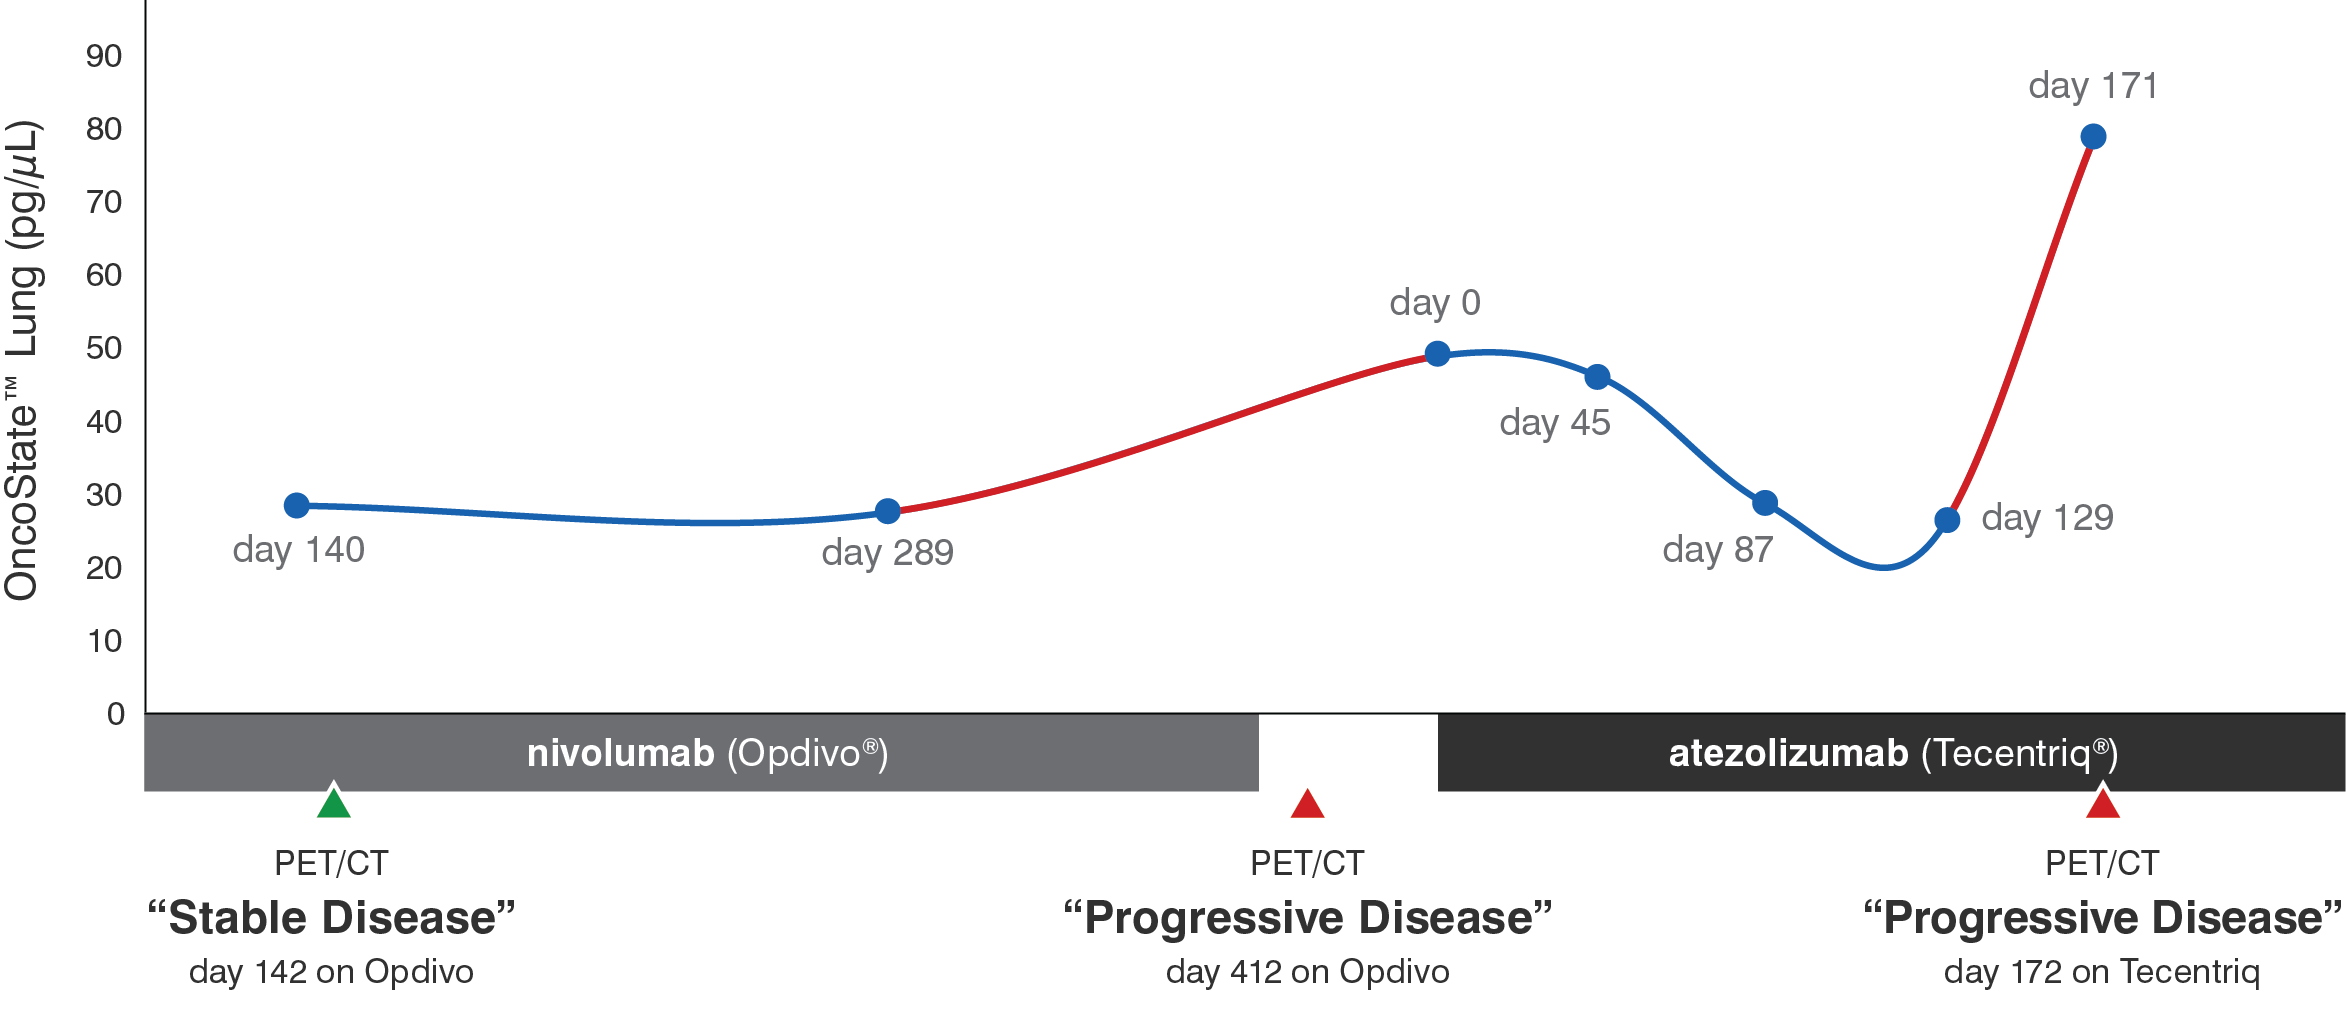 Figure 1. Timeline of a patient with stage IV Non-Small Cell Lung Cancer. The red portions indicate elevation in plasma cfDNA levels (as measured by OncoState™IO) and correlate with lack of treatment response.